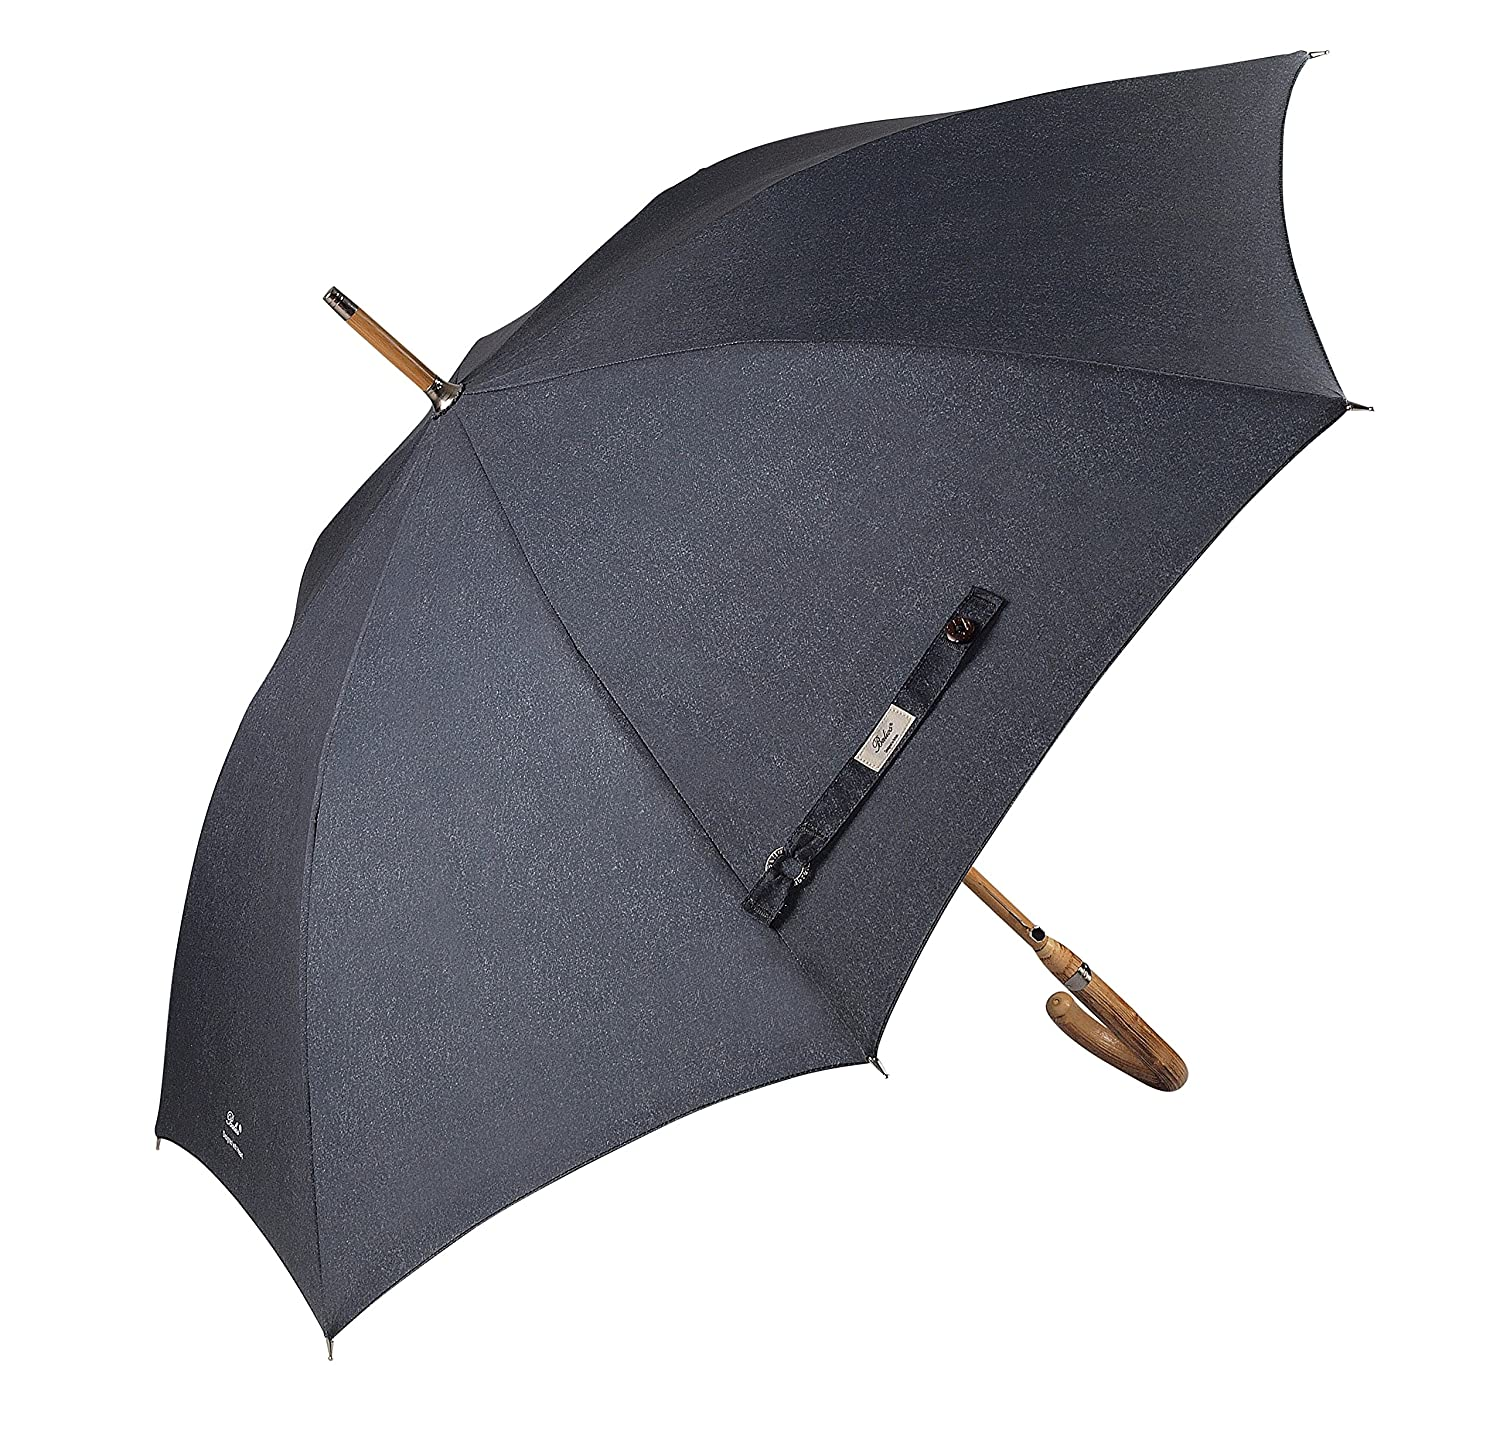 Ace Teah Travel Umbrella 42 Inch Black Compact 46 Inch Rain Umbrella for Men Women Auto Open Close with Safety Reflective Strip Automatic Folding Umbrella 10 Ribs Windproof to 60MPH